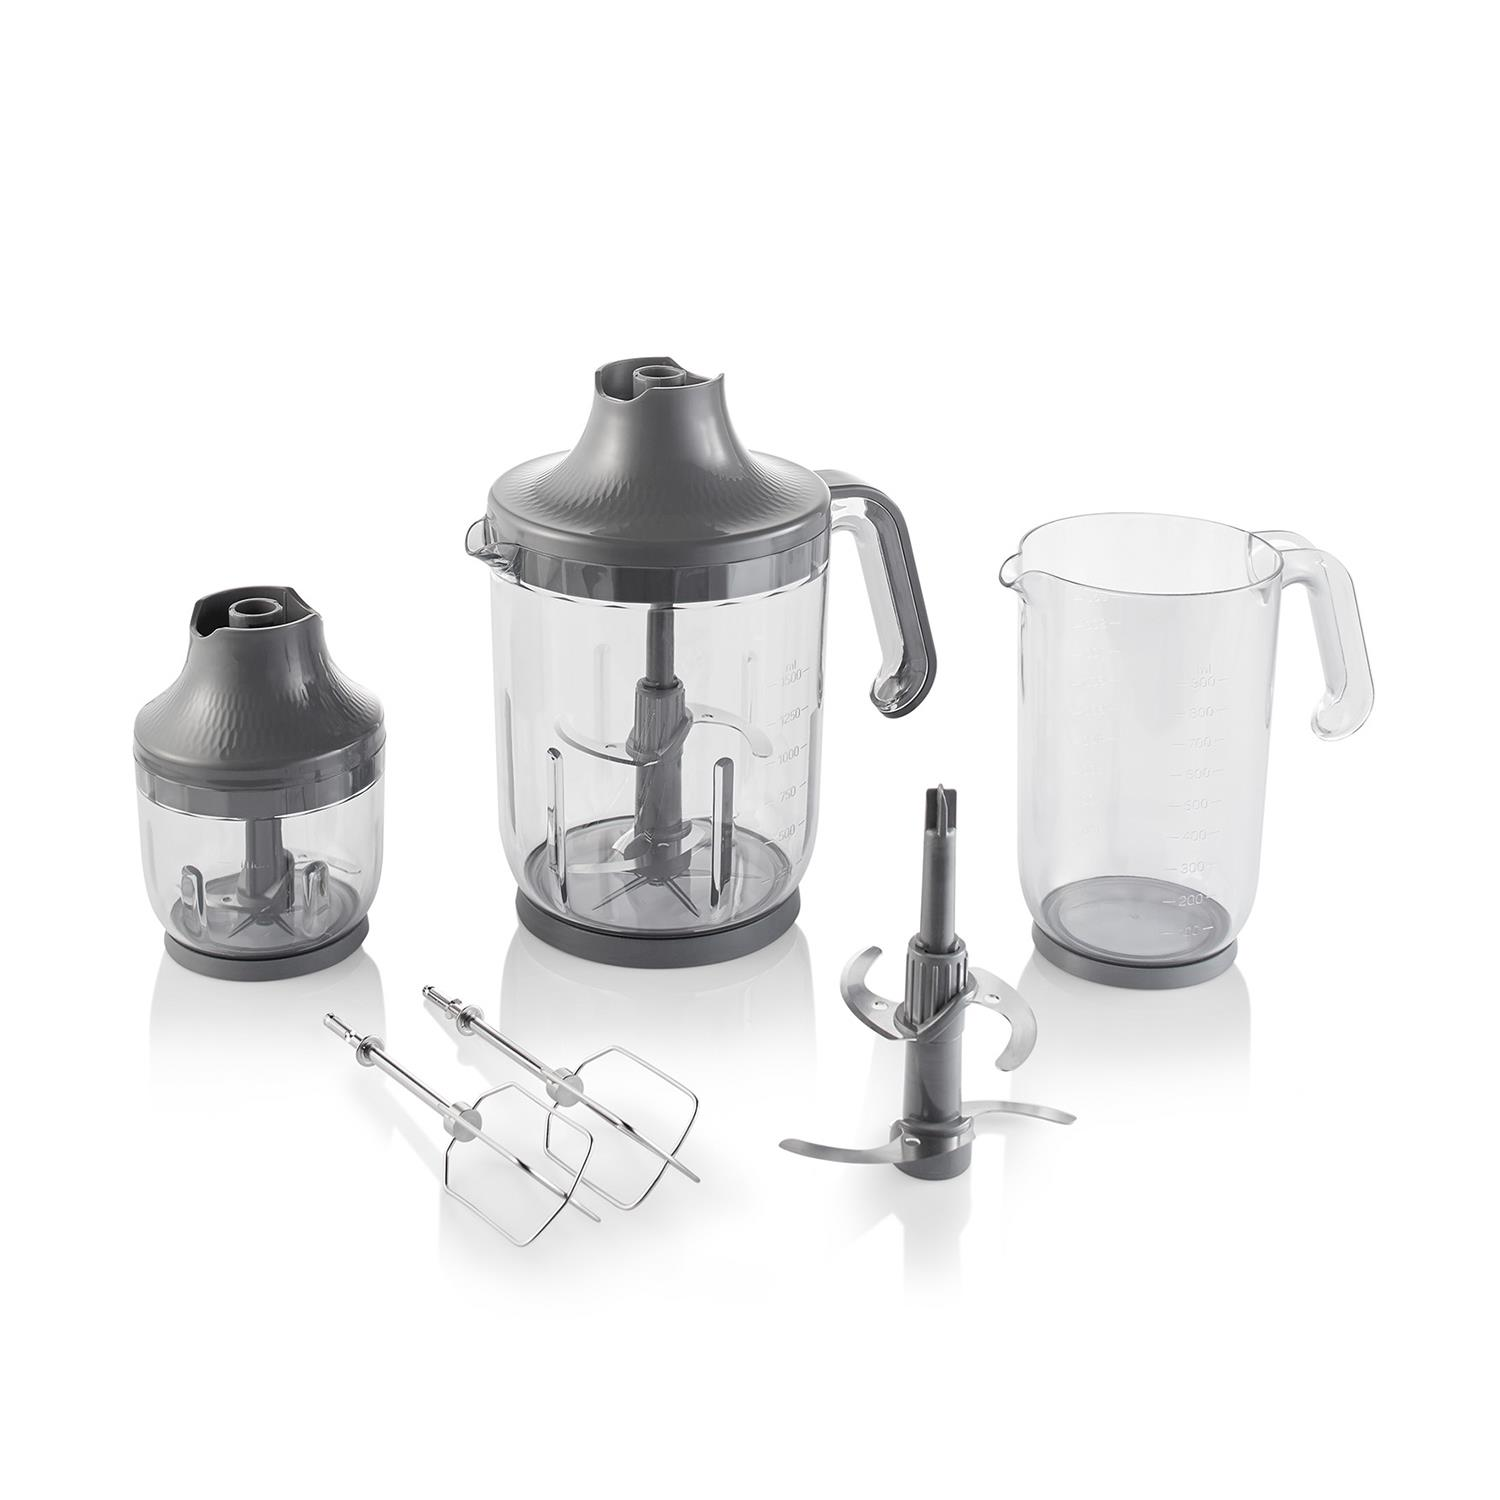 Arzum AR1070 Technoart Maxi Plus Blender Set - Siyah